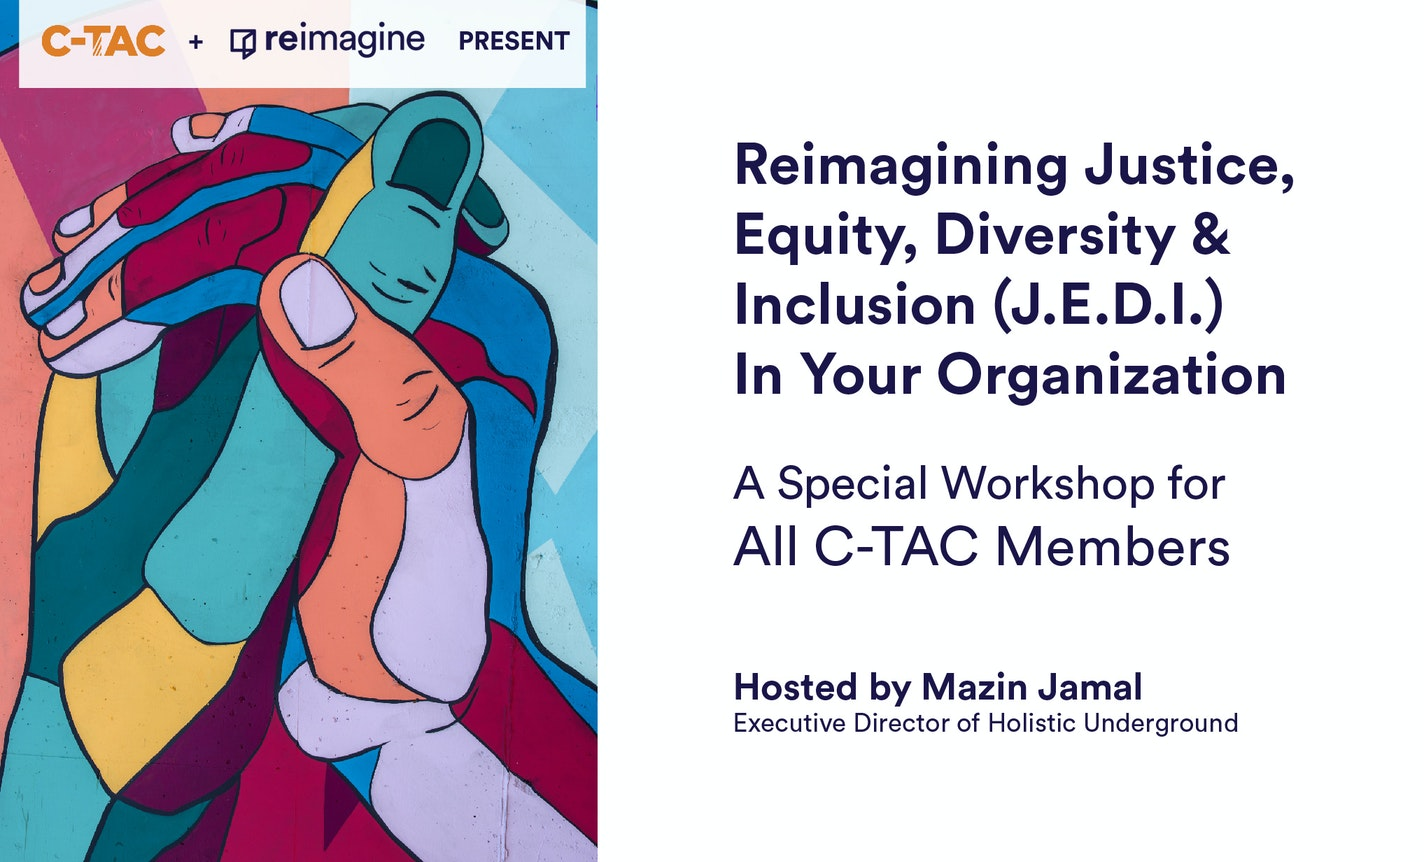 Reimagining Justice, Equity, Diversity & Inclusion